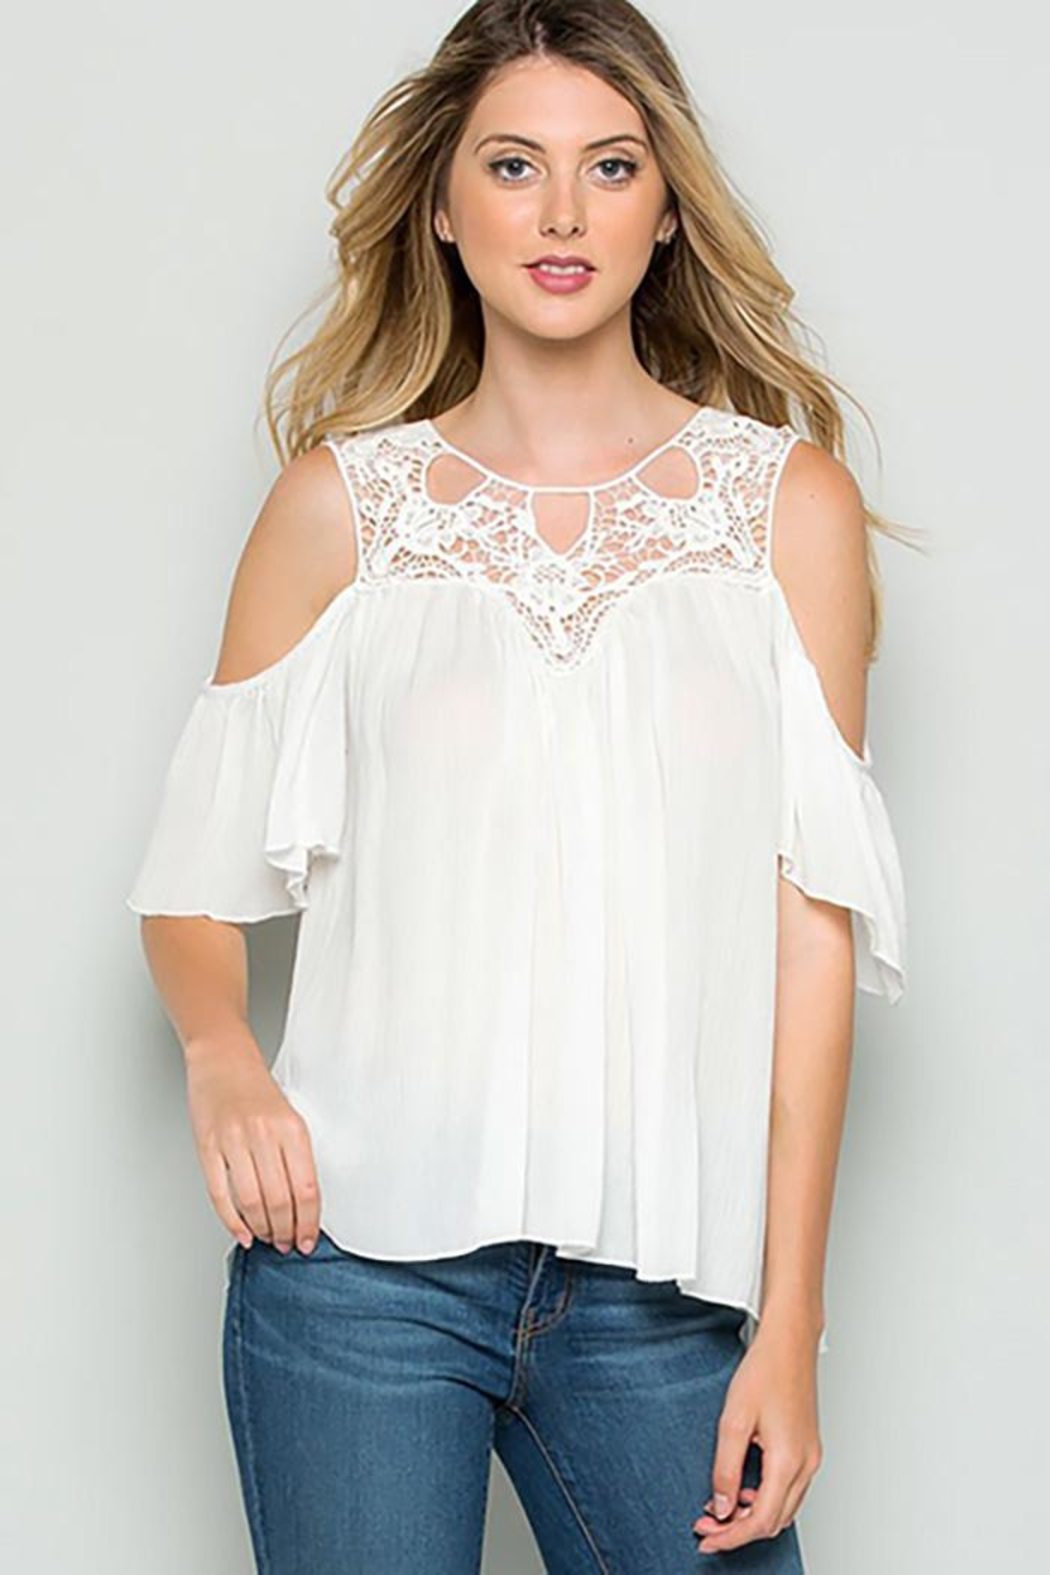 CY Fashion Crochet Lace Detail Cold Shoulder Top - Main Image